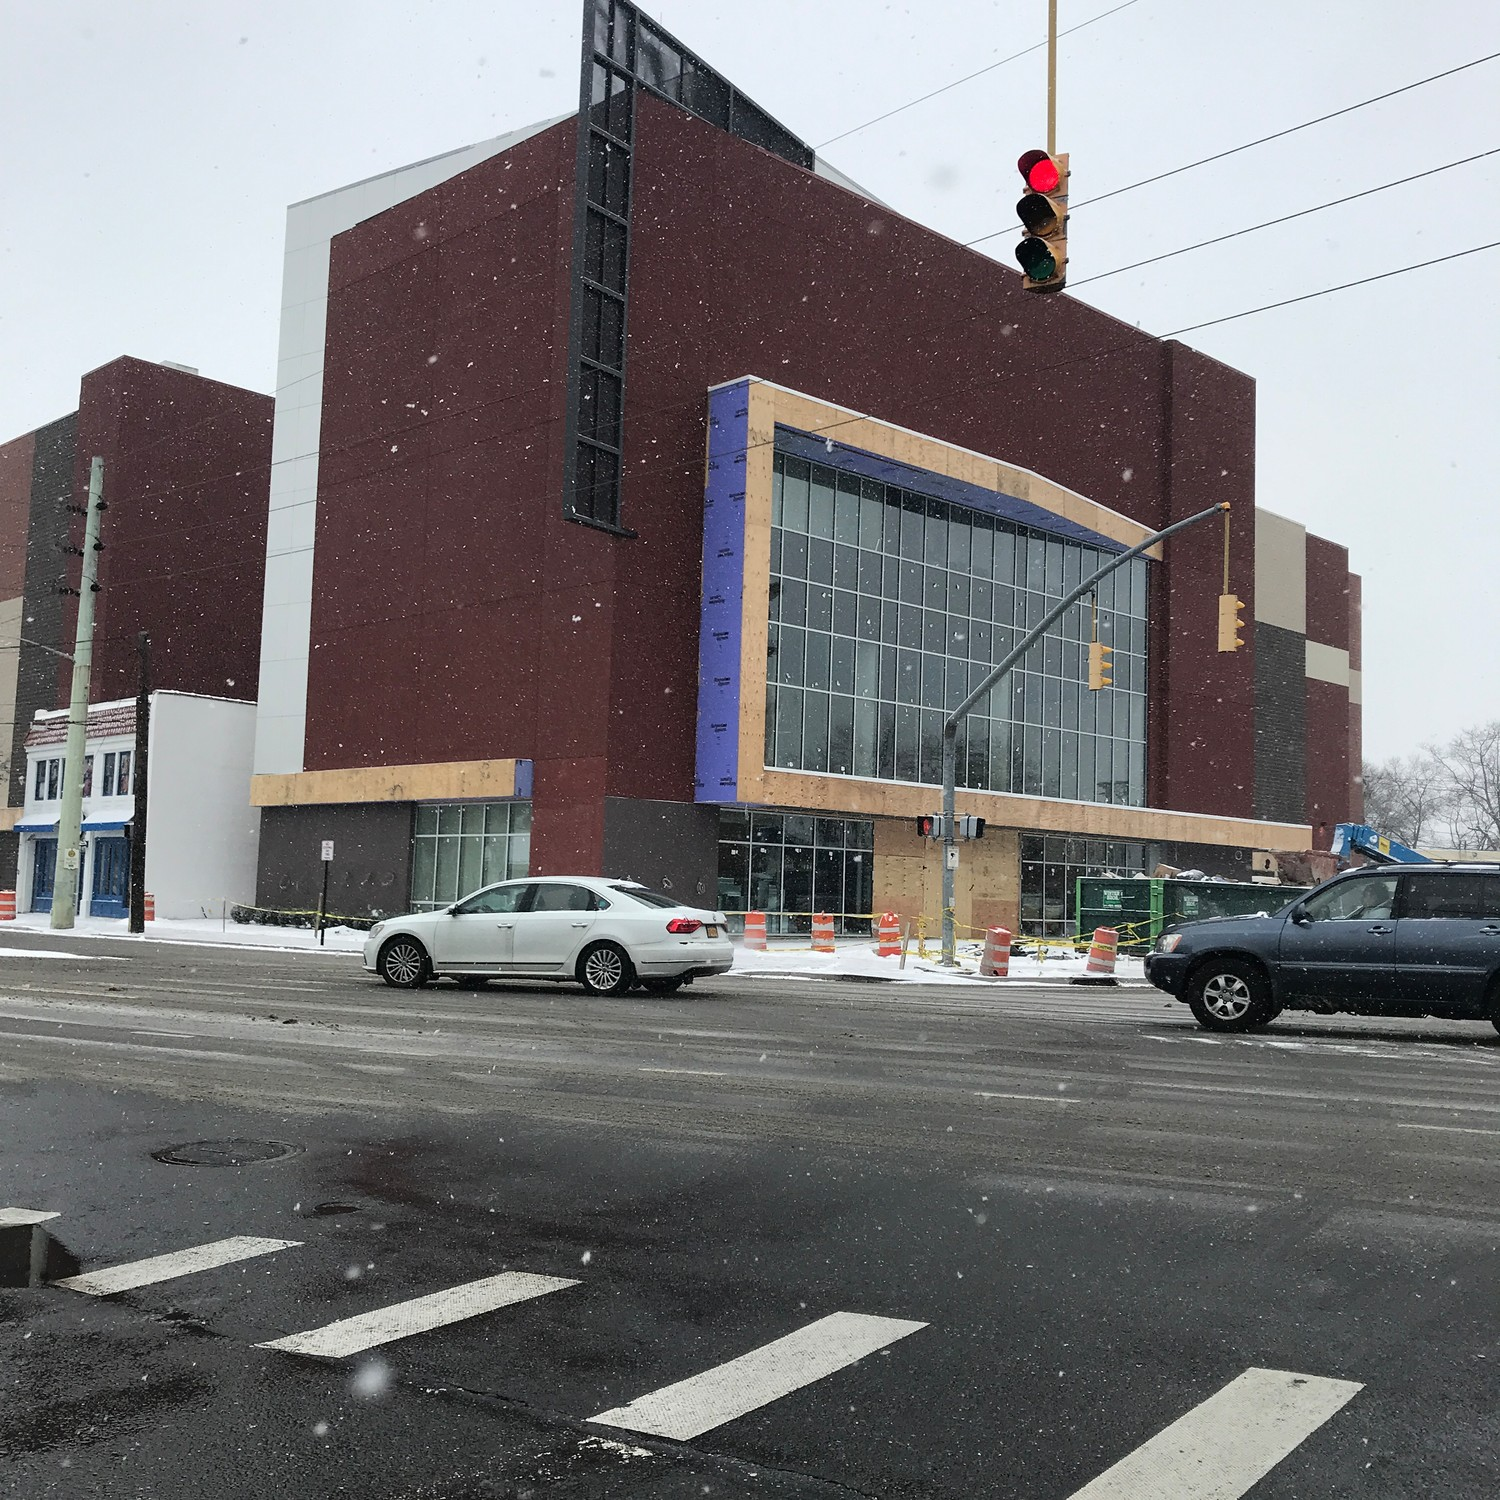 Among the major local projects scheduled for completion this year is the new Regal movie theater in Lynbrook, which should open in the next 90 days, according to Mayor Alan Beach.